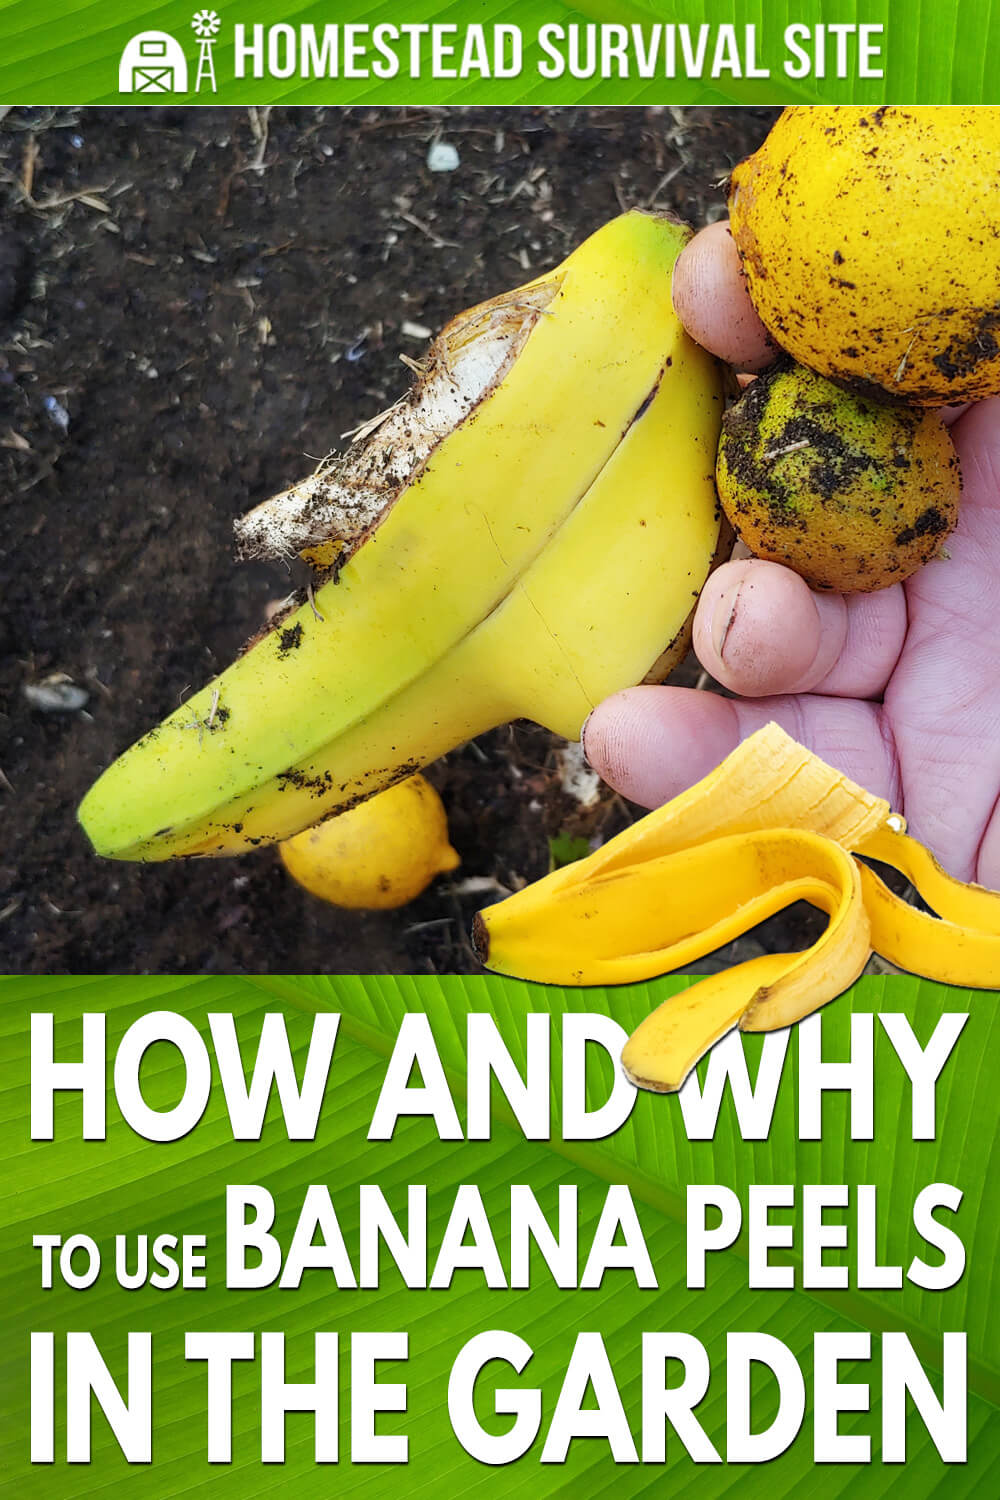 How and Why to Use Banana Peels in the Garden